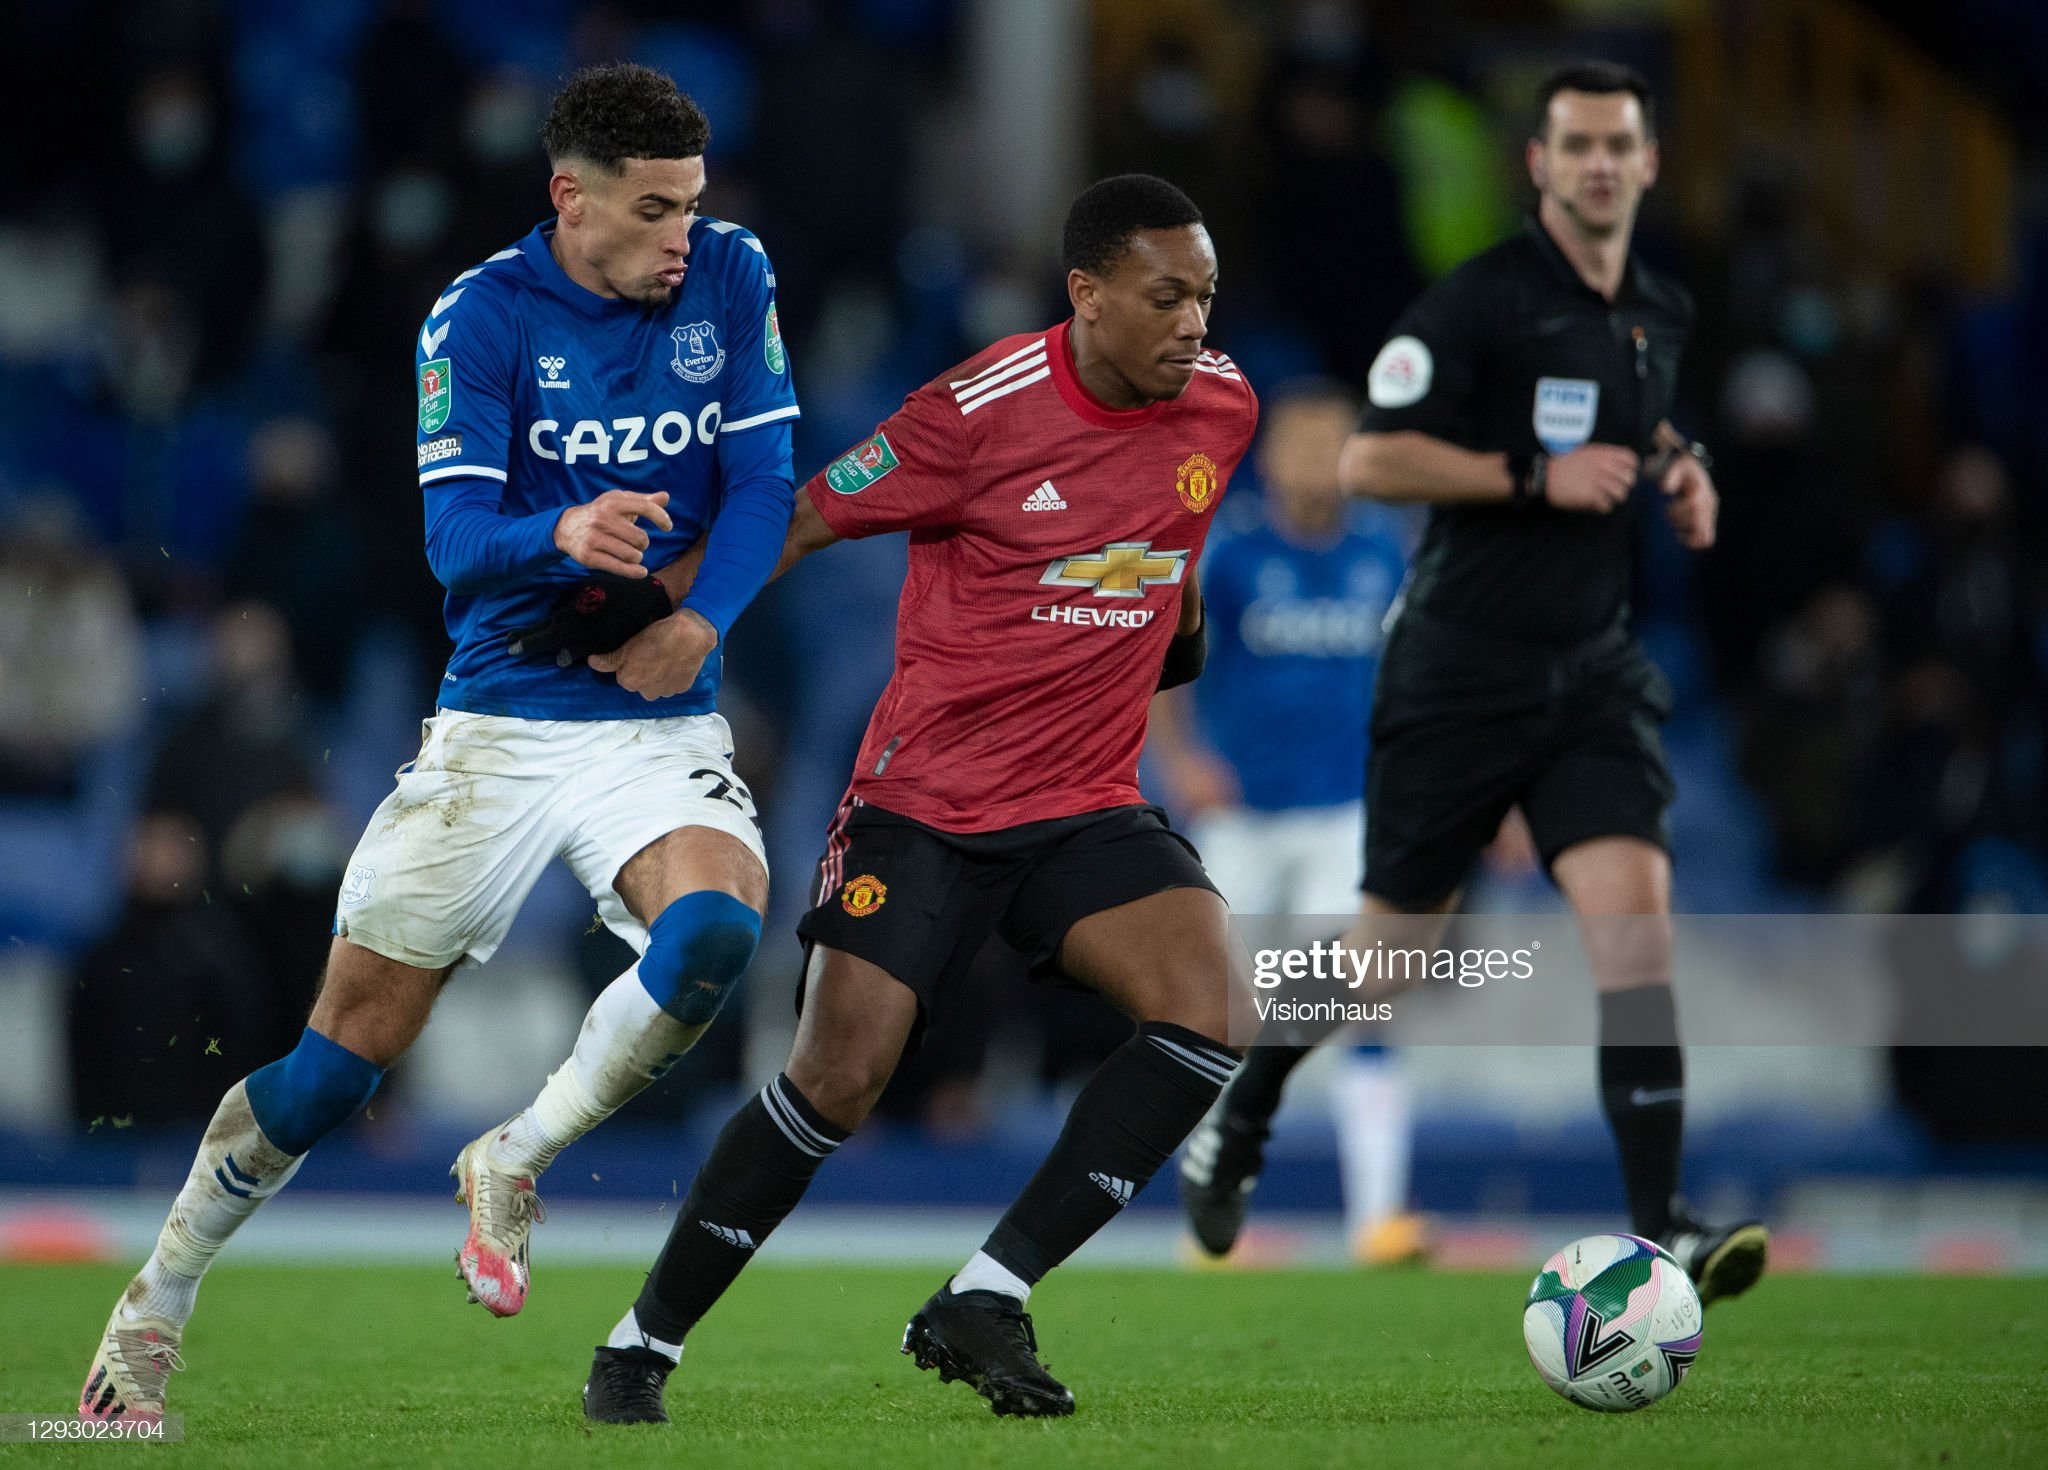 Manchester United vs Everton Preview, prediction and odds